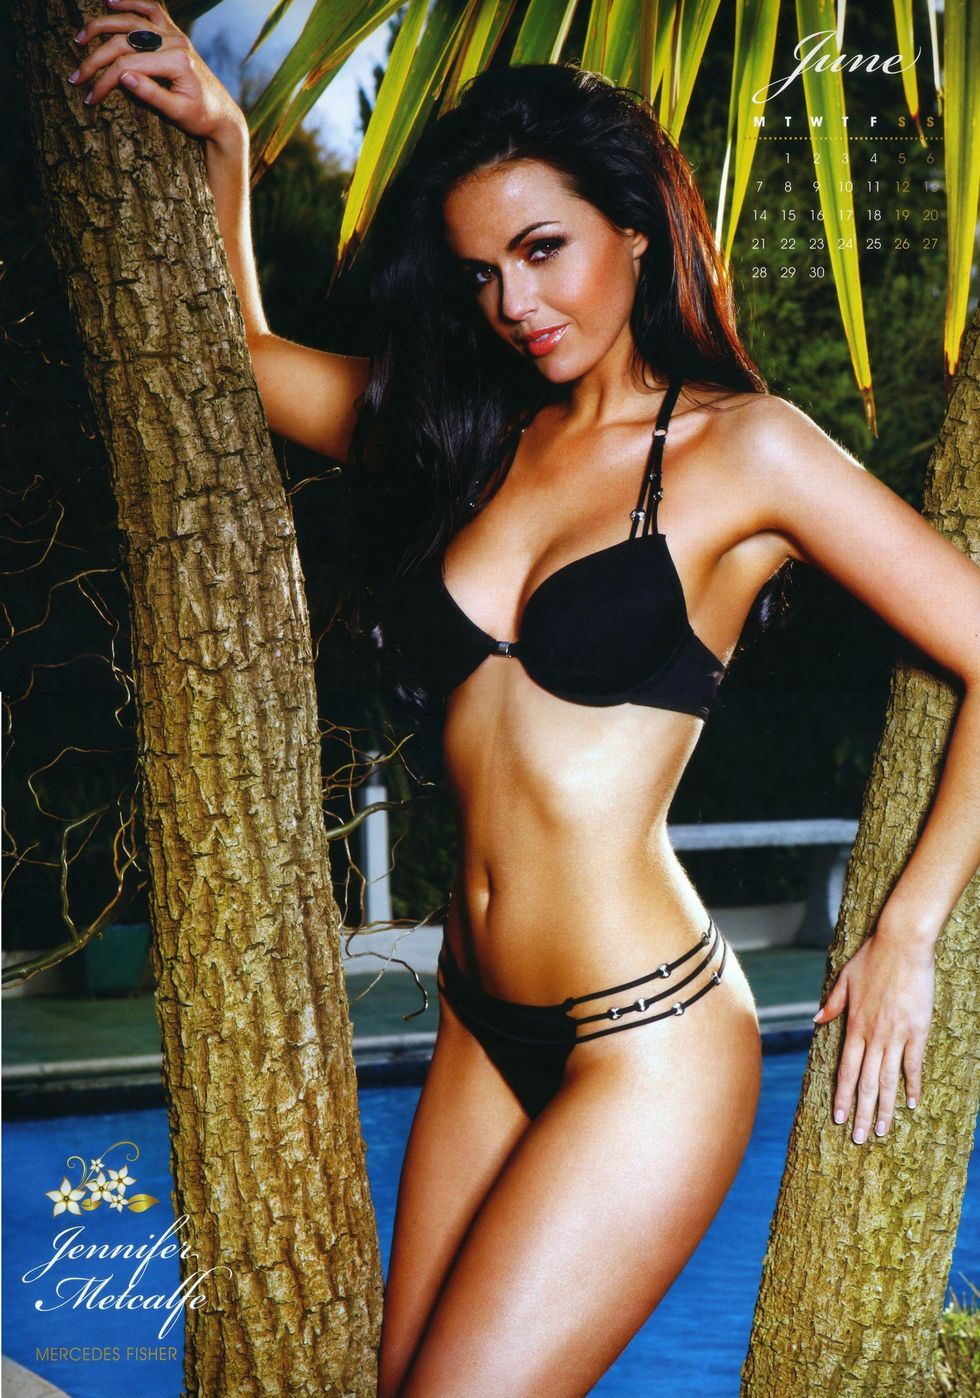 hollyoaks-babes-official-calendar-2010-01